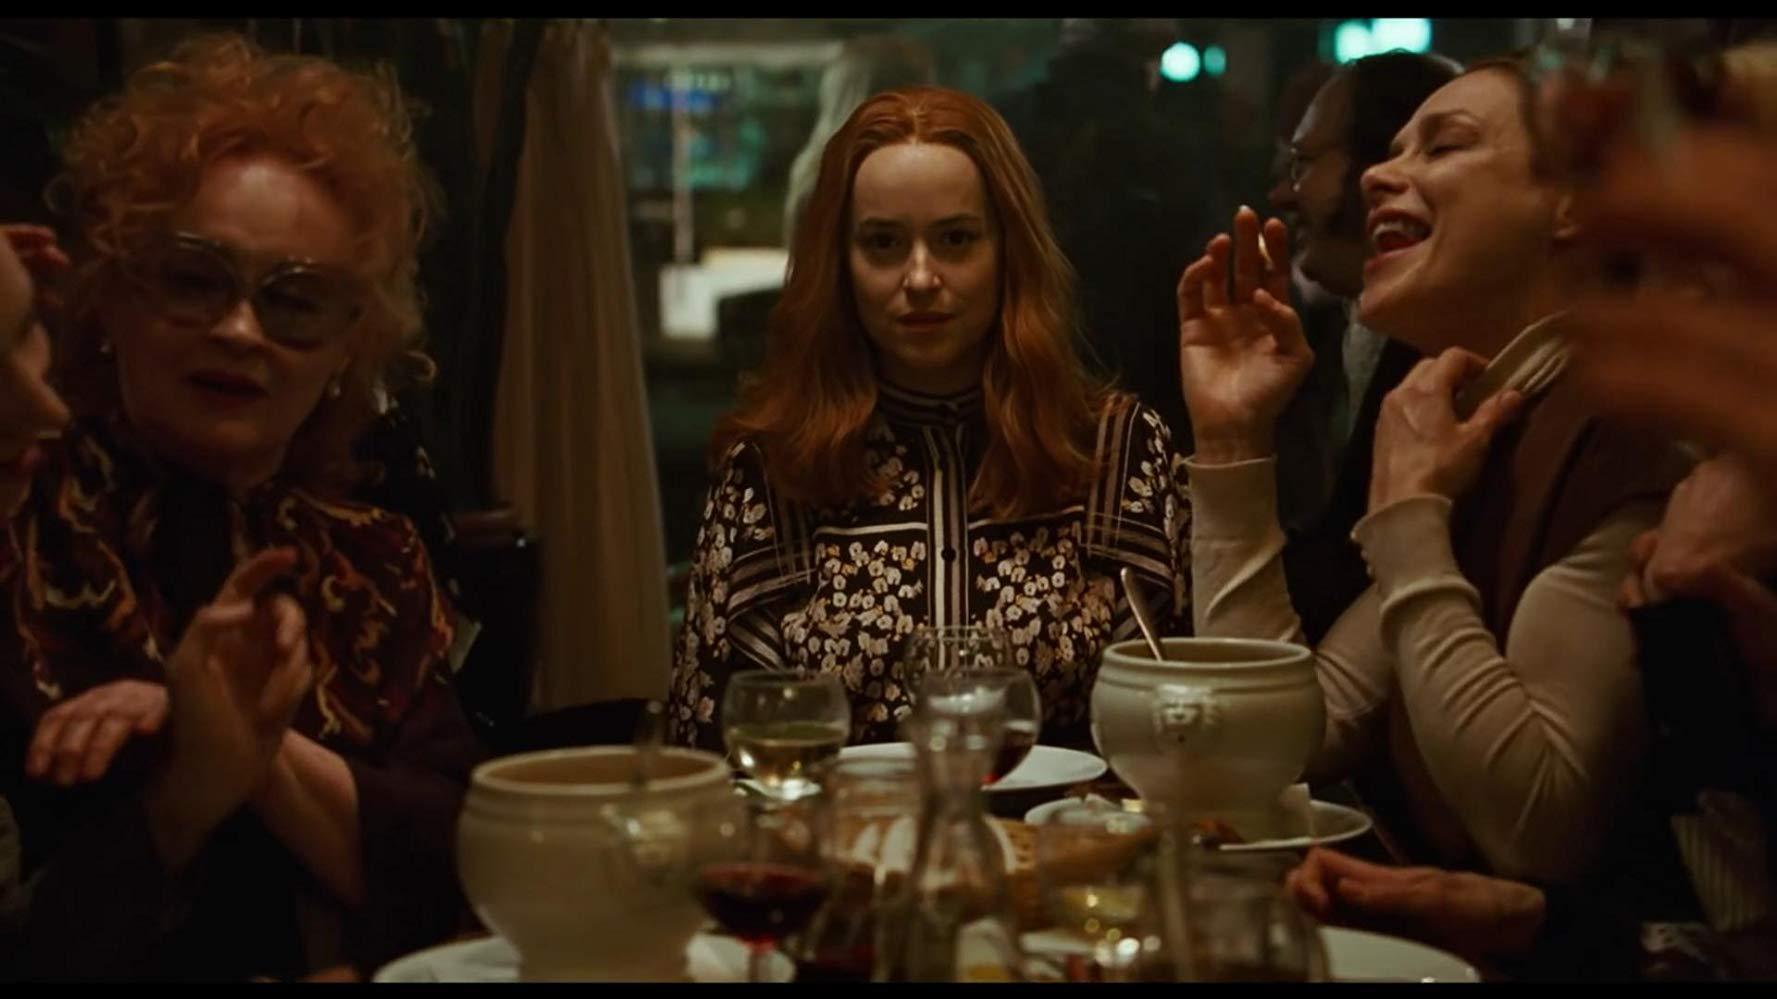 Fantastic Fest Review: Suspiria (2018)